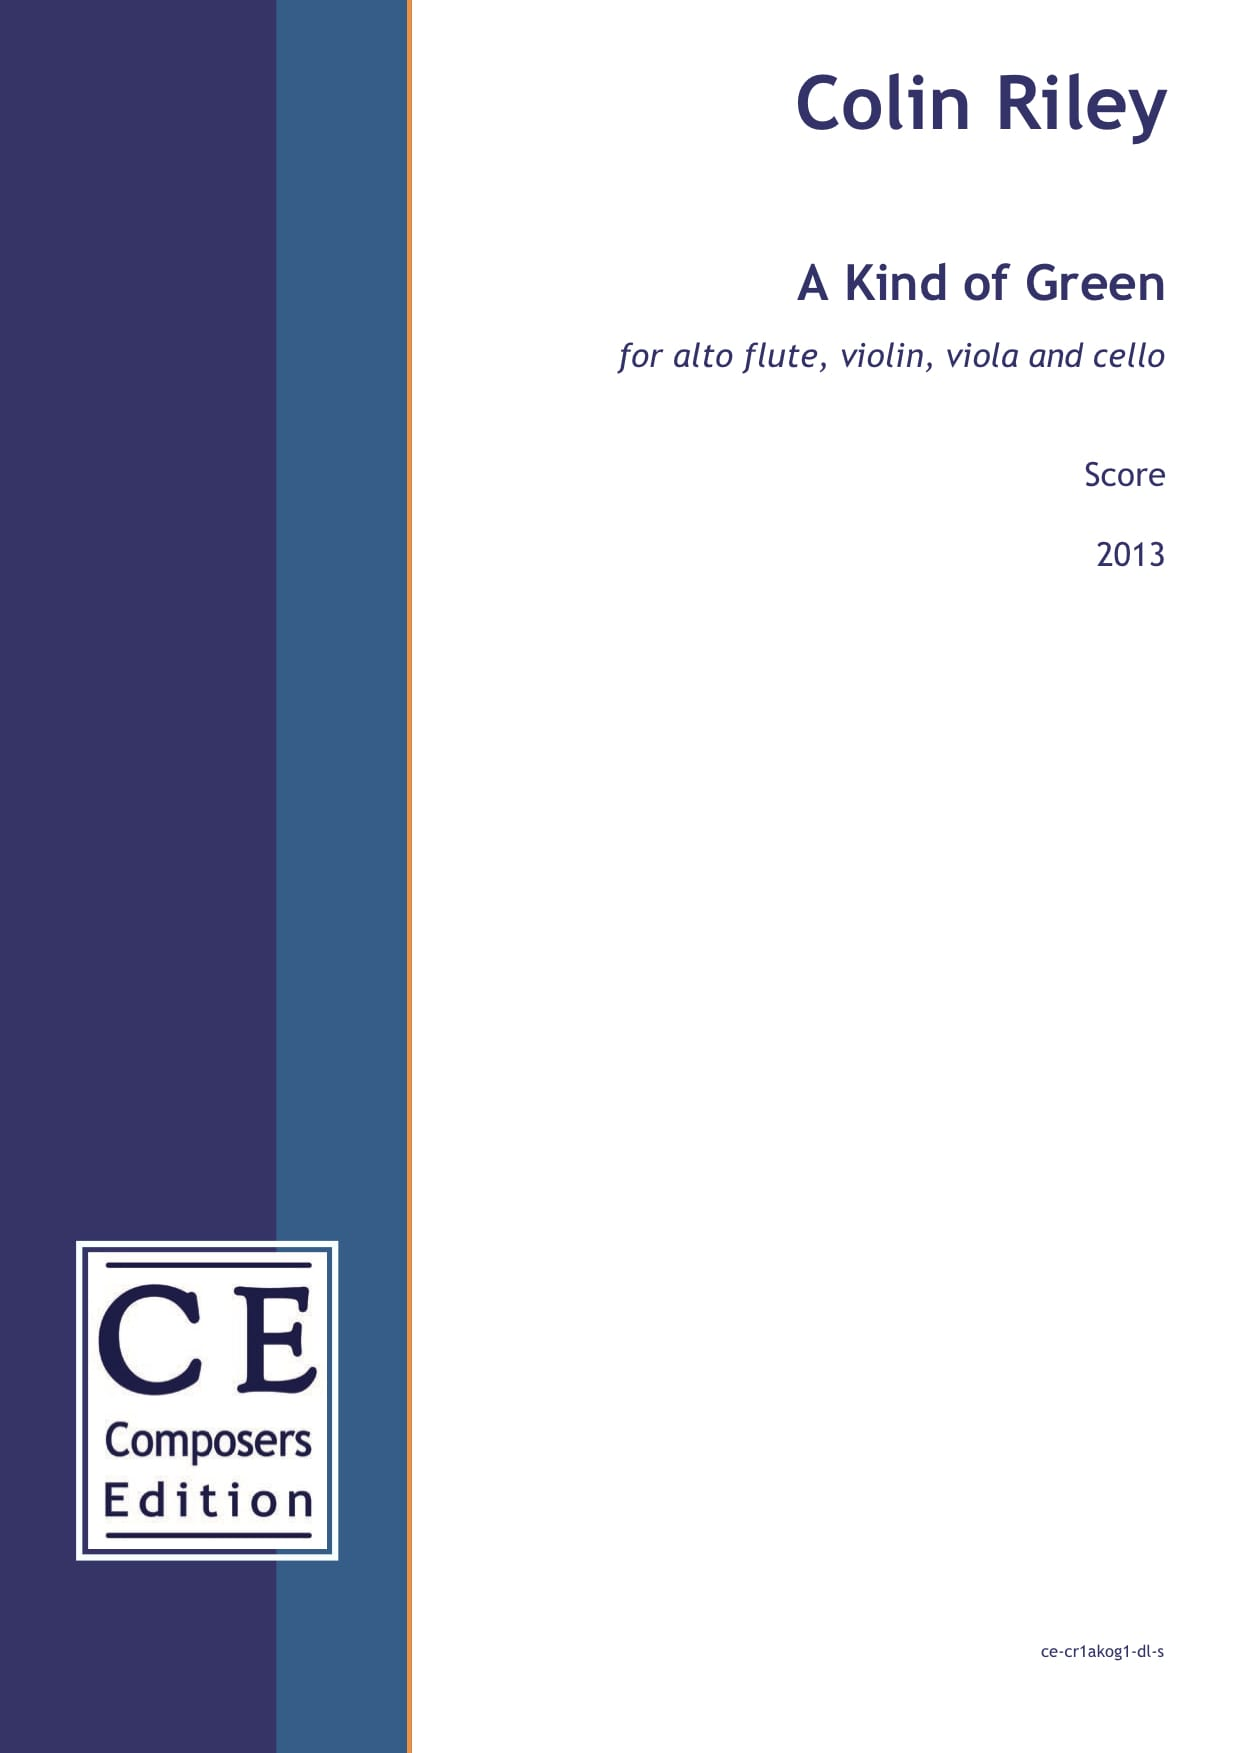 Colin Riley: A Kind of Green for alto flute, violin, viola and cello